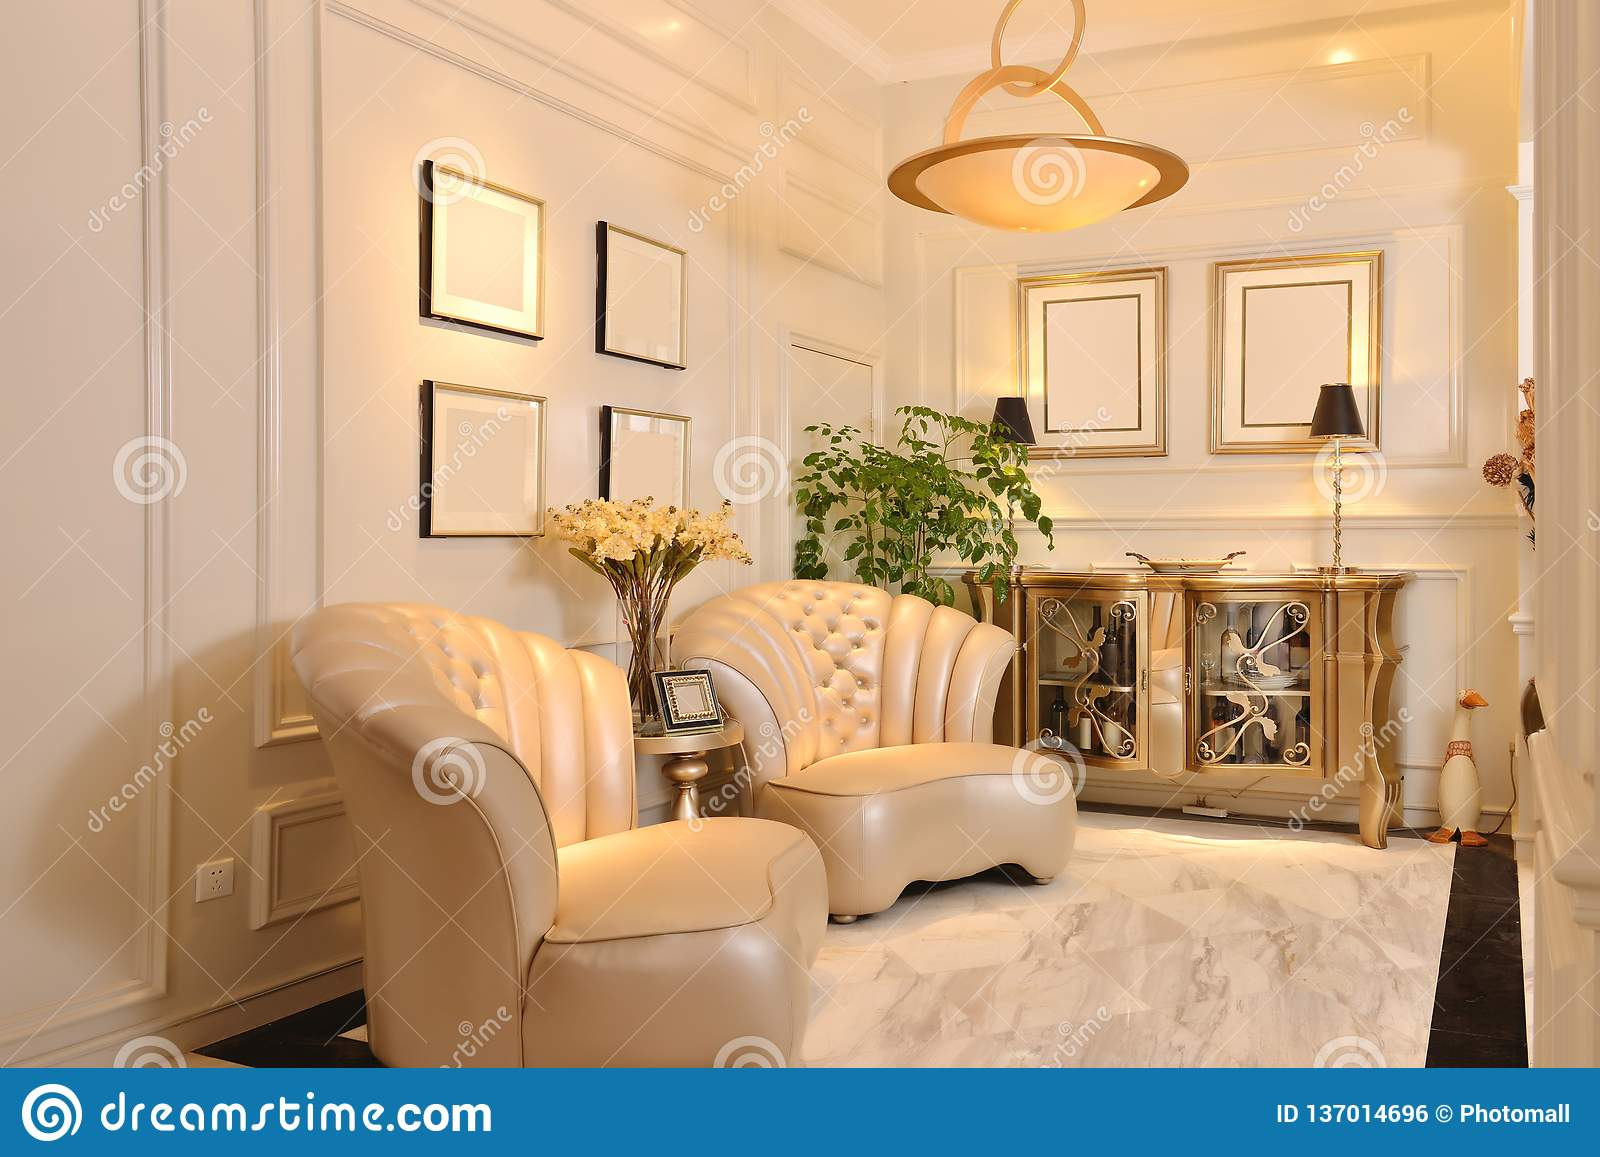 Living Room With Luxury Leather Sofa Stock Photo Image Of Dining Frame 137014696